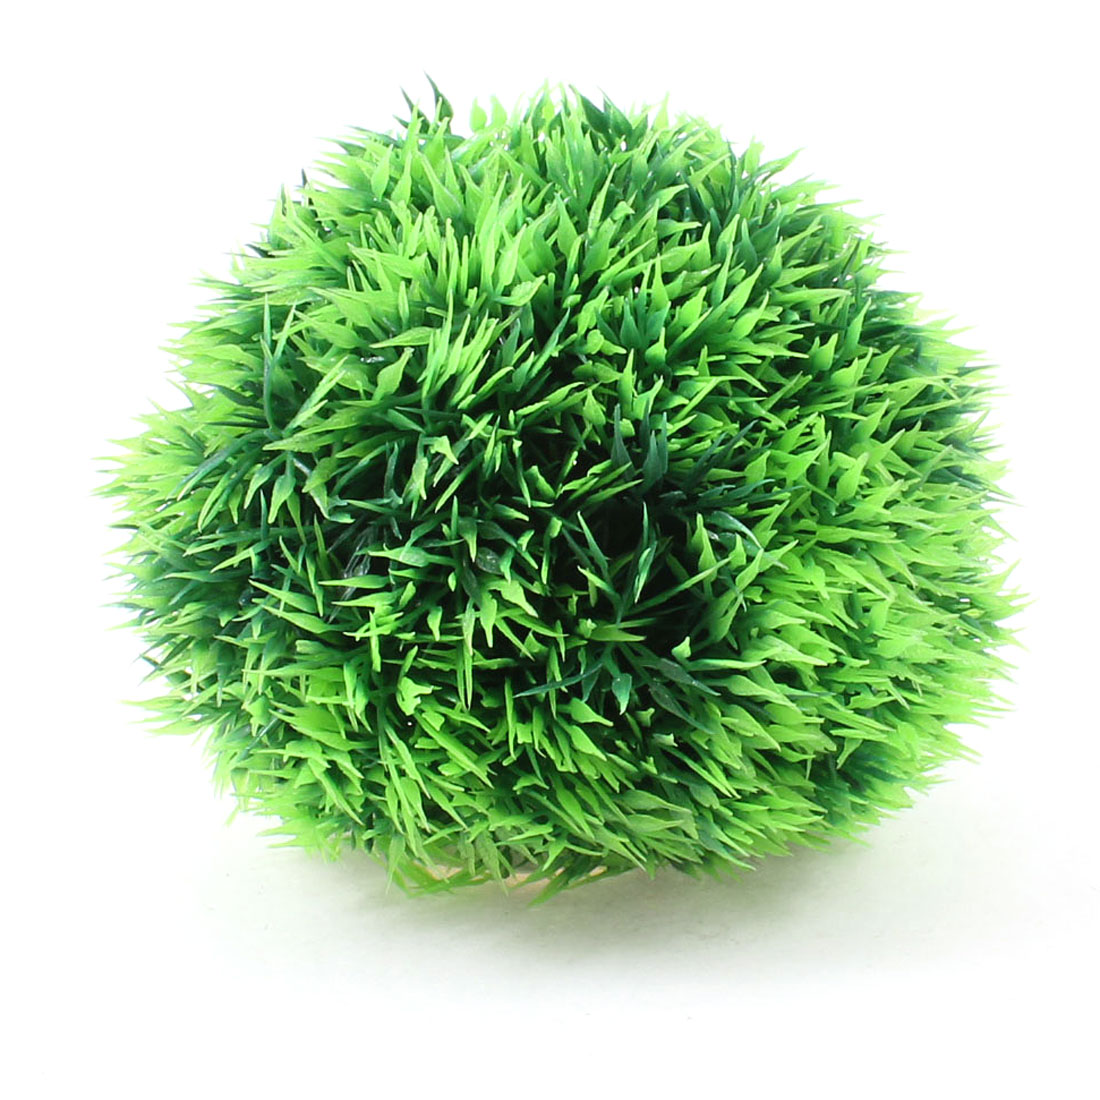 Aquarium Ball Design Manmade Water Plant Grass Decoration Green w Ceramic Base